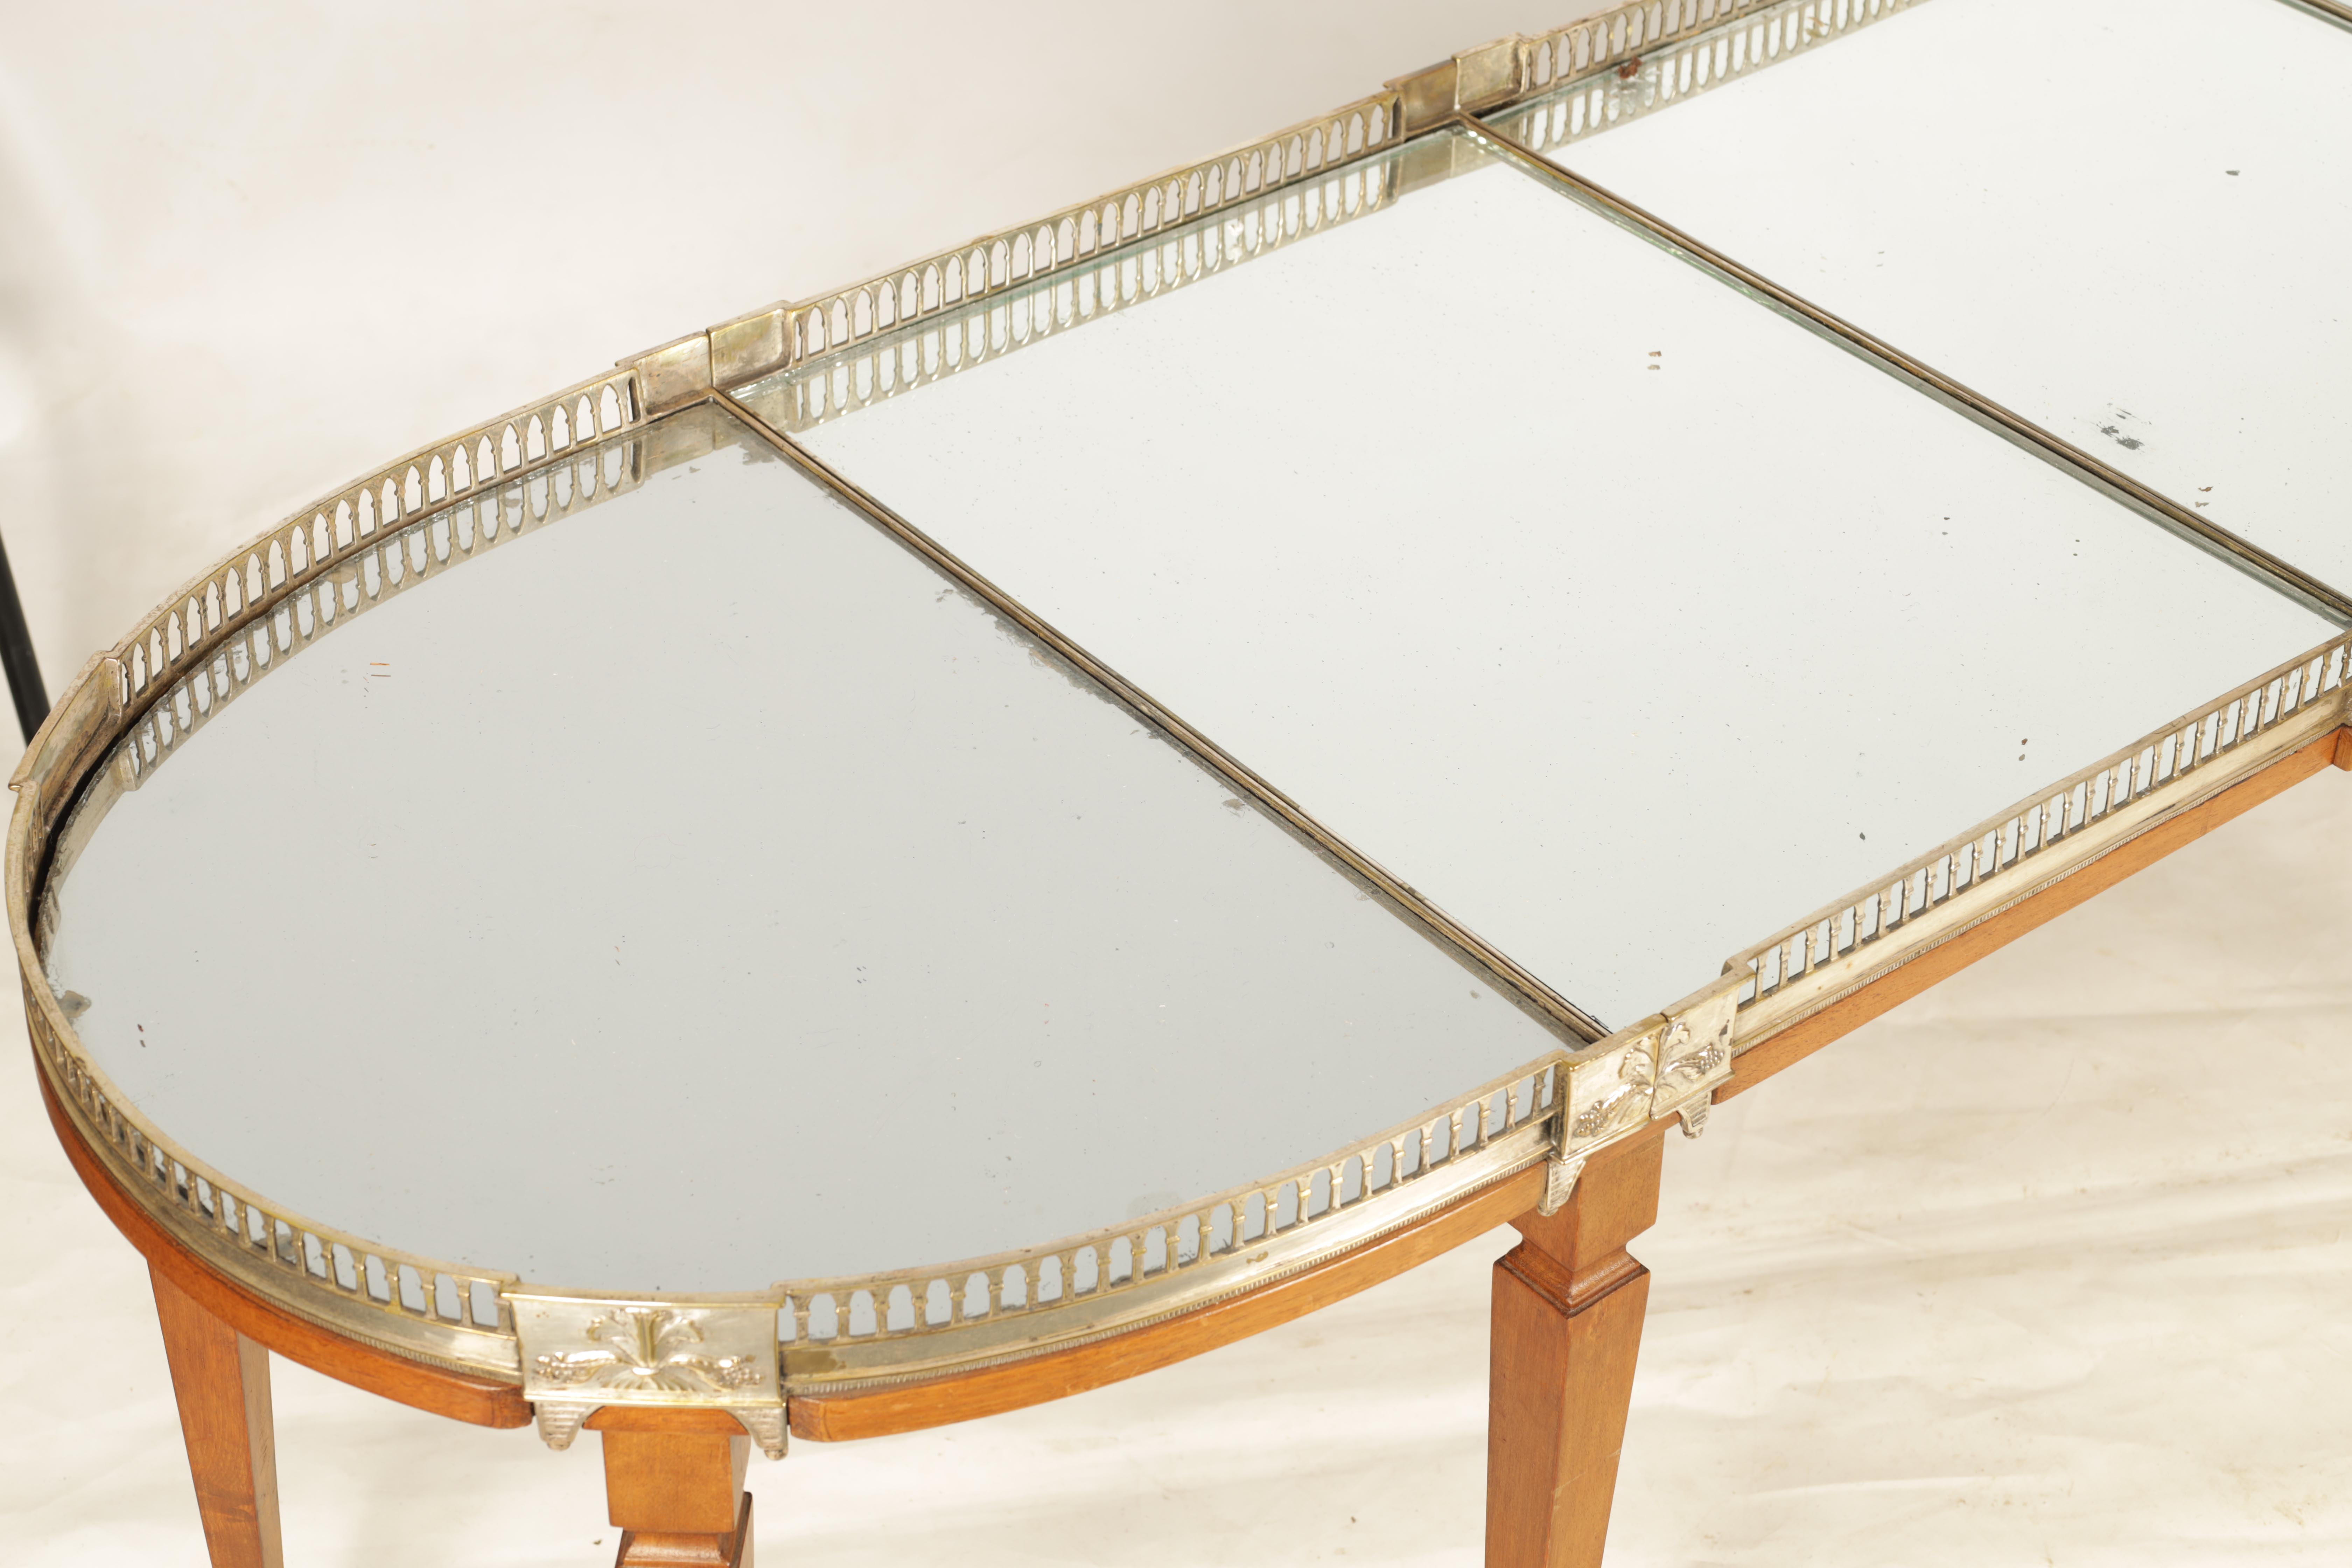 A 19TH CENTURY SILVERED BRONZE TABLE CENTREPIECE FOUR SECTIONAL TRAY with pierced gallery and - Image 3 of 5